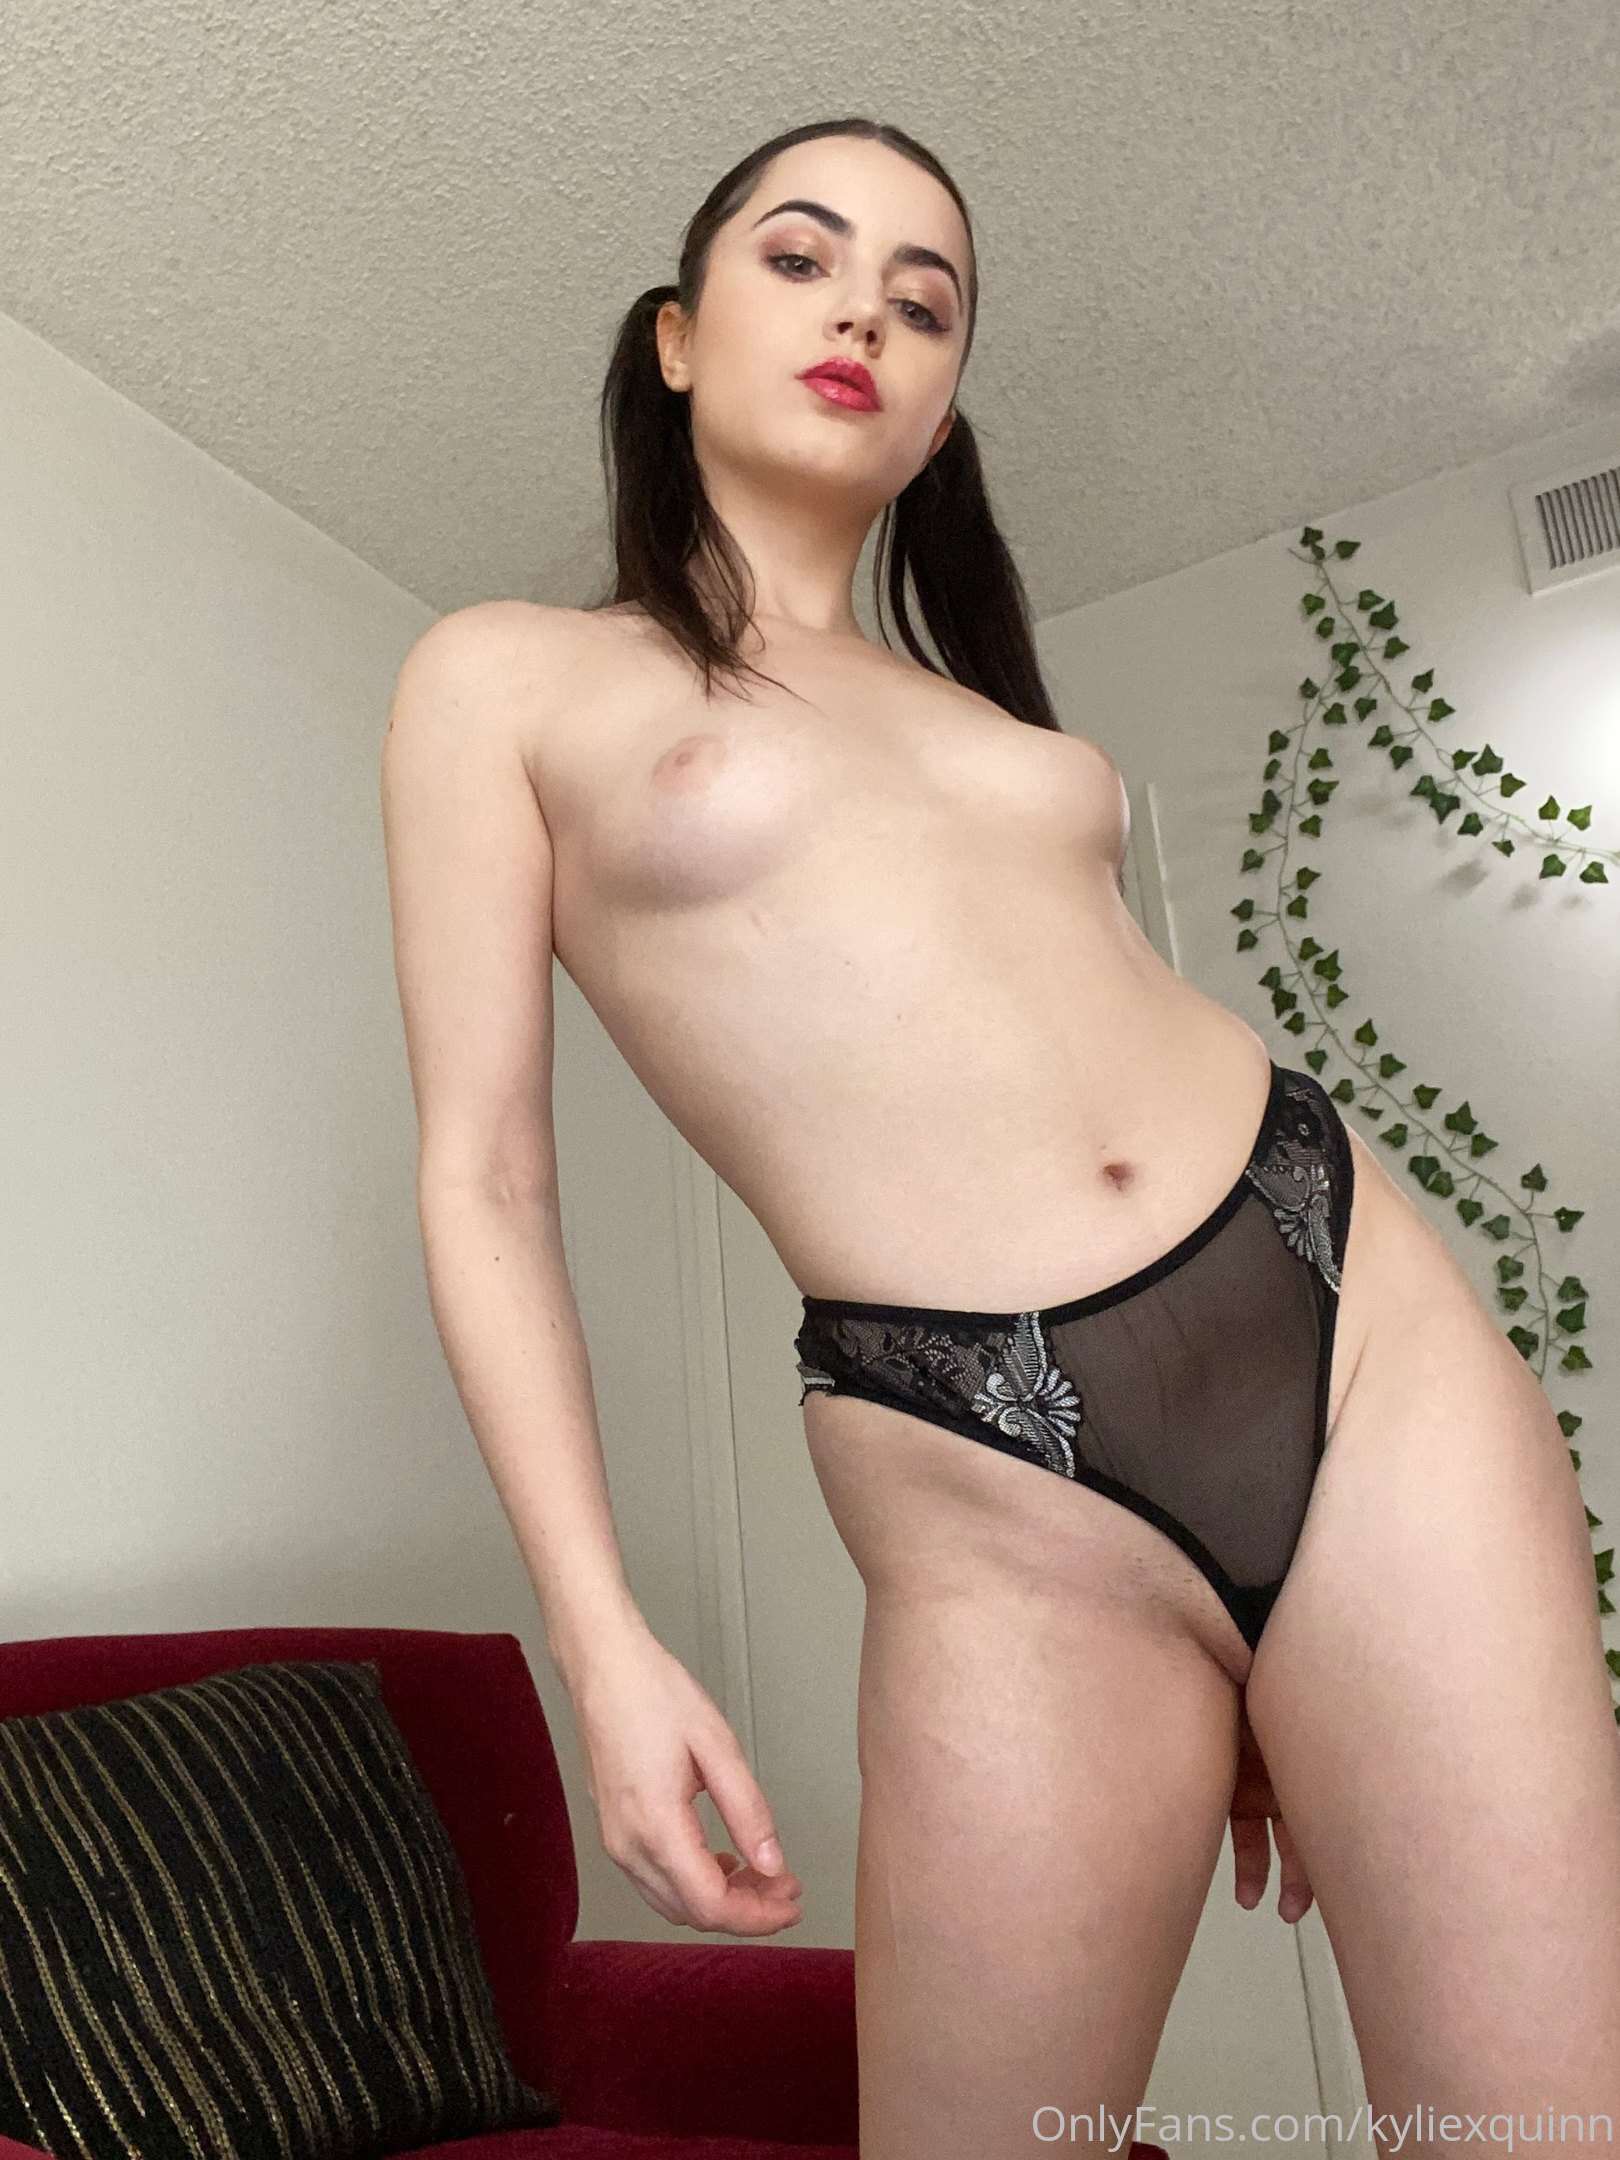 Kylie Xy, Kyliexquinn, Onlyfans (29)